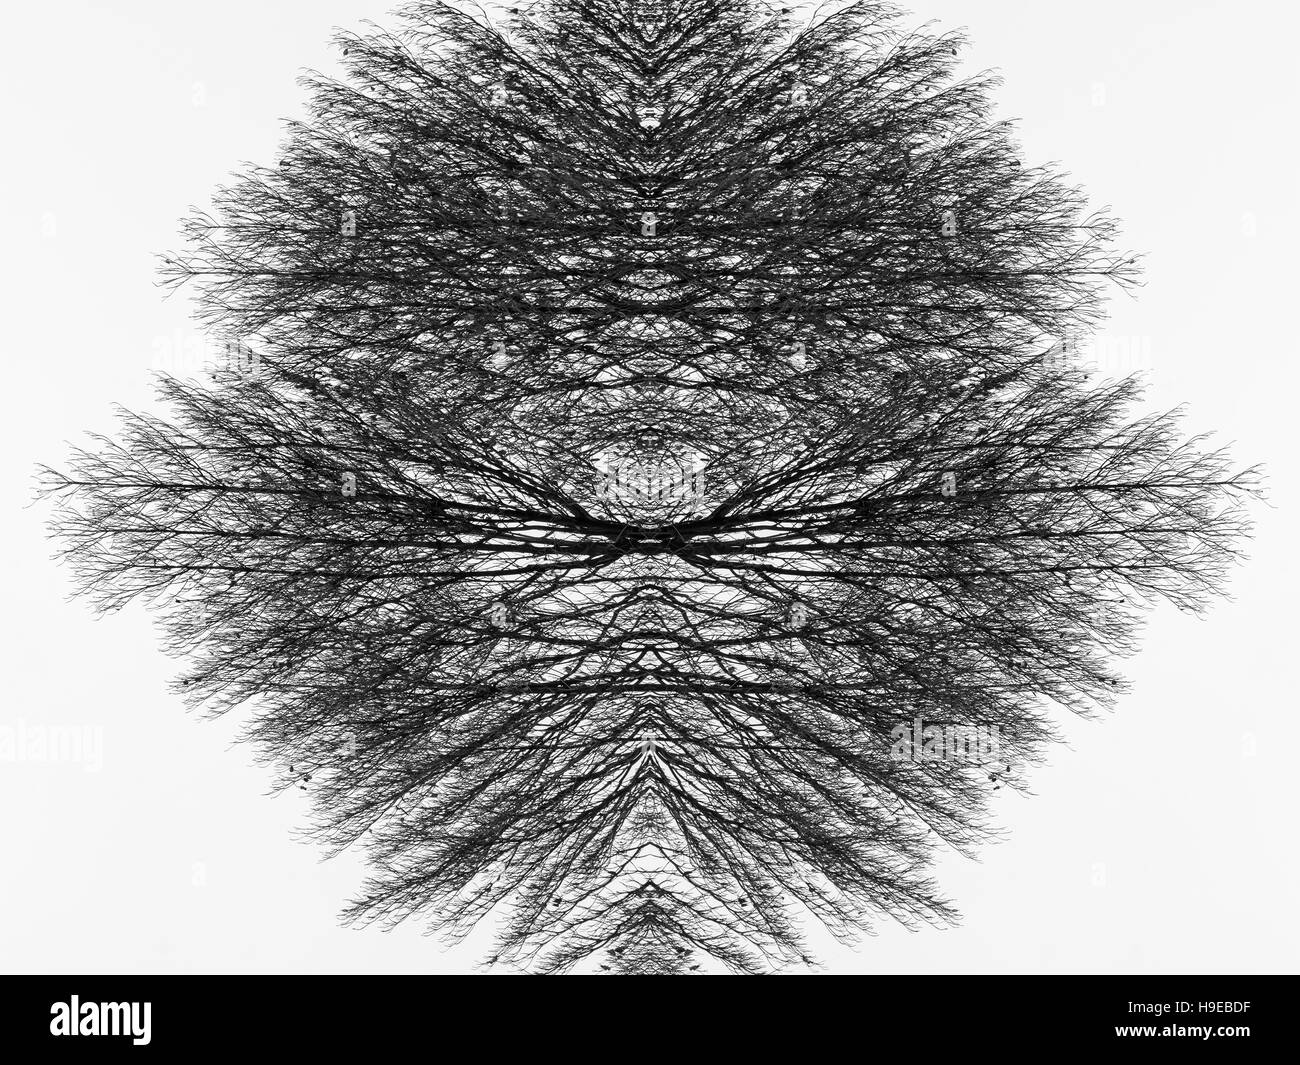 Symmetrical art concept of dry branches of an old dead tree. Black and white photography. - Stock Image